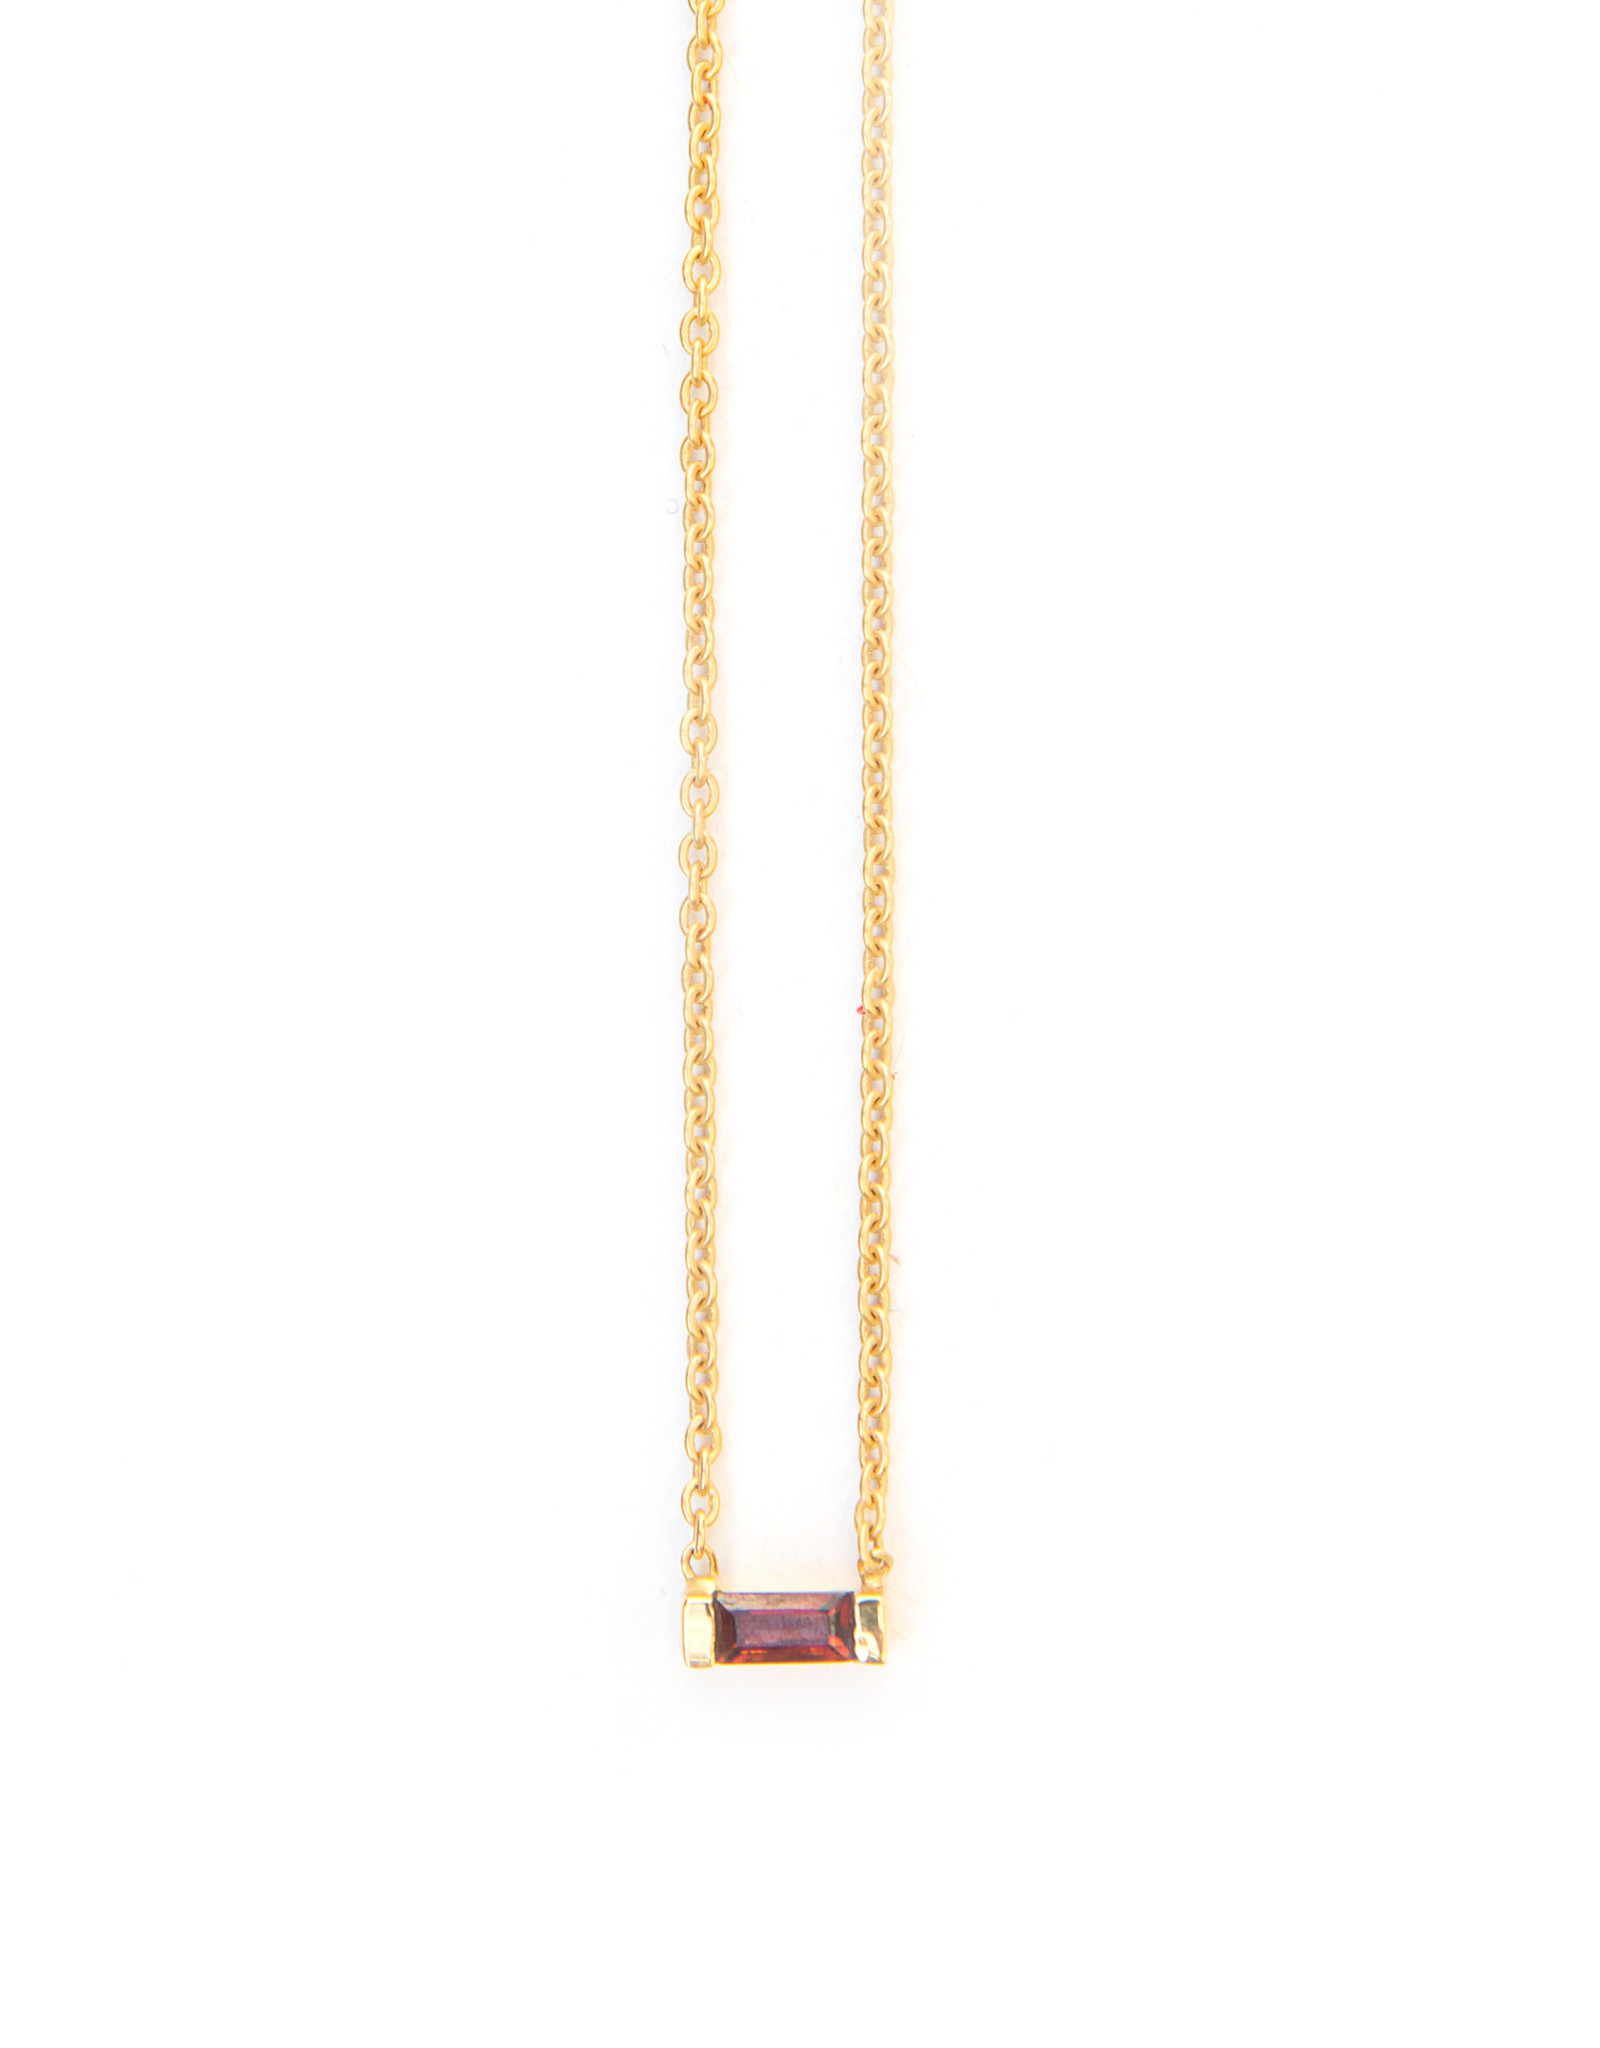 Fair Anita Prism Gold Necklace with Garnet, India